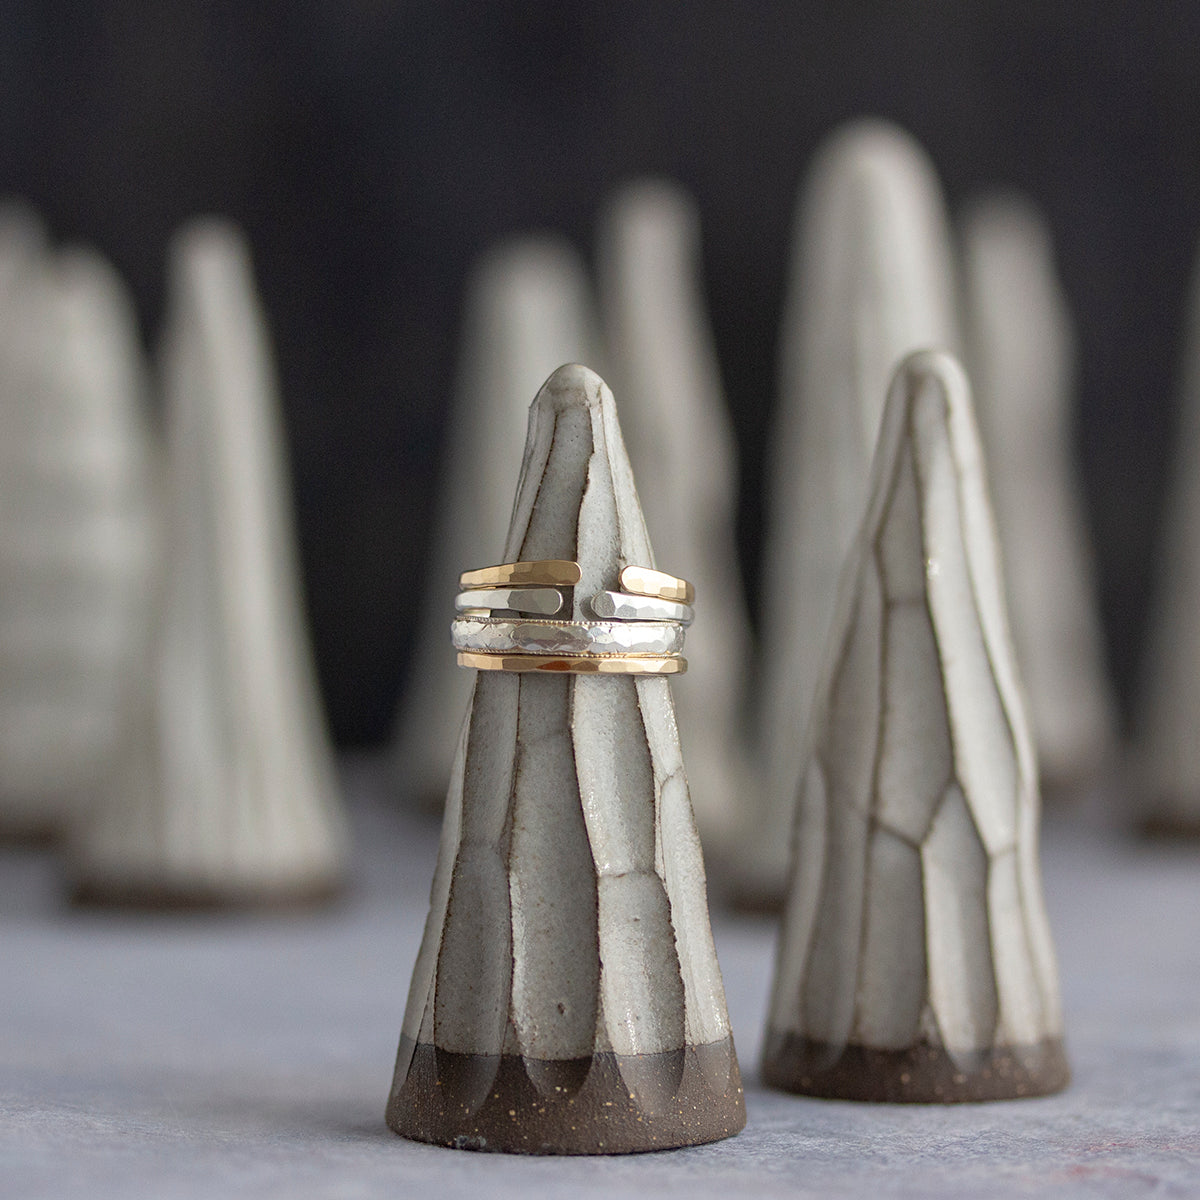 Rebecca Haas Jewelry and Huskmilk Pottery Collaboration